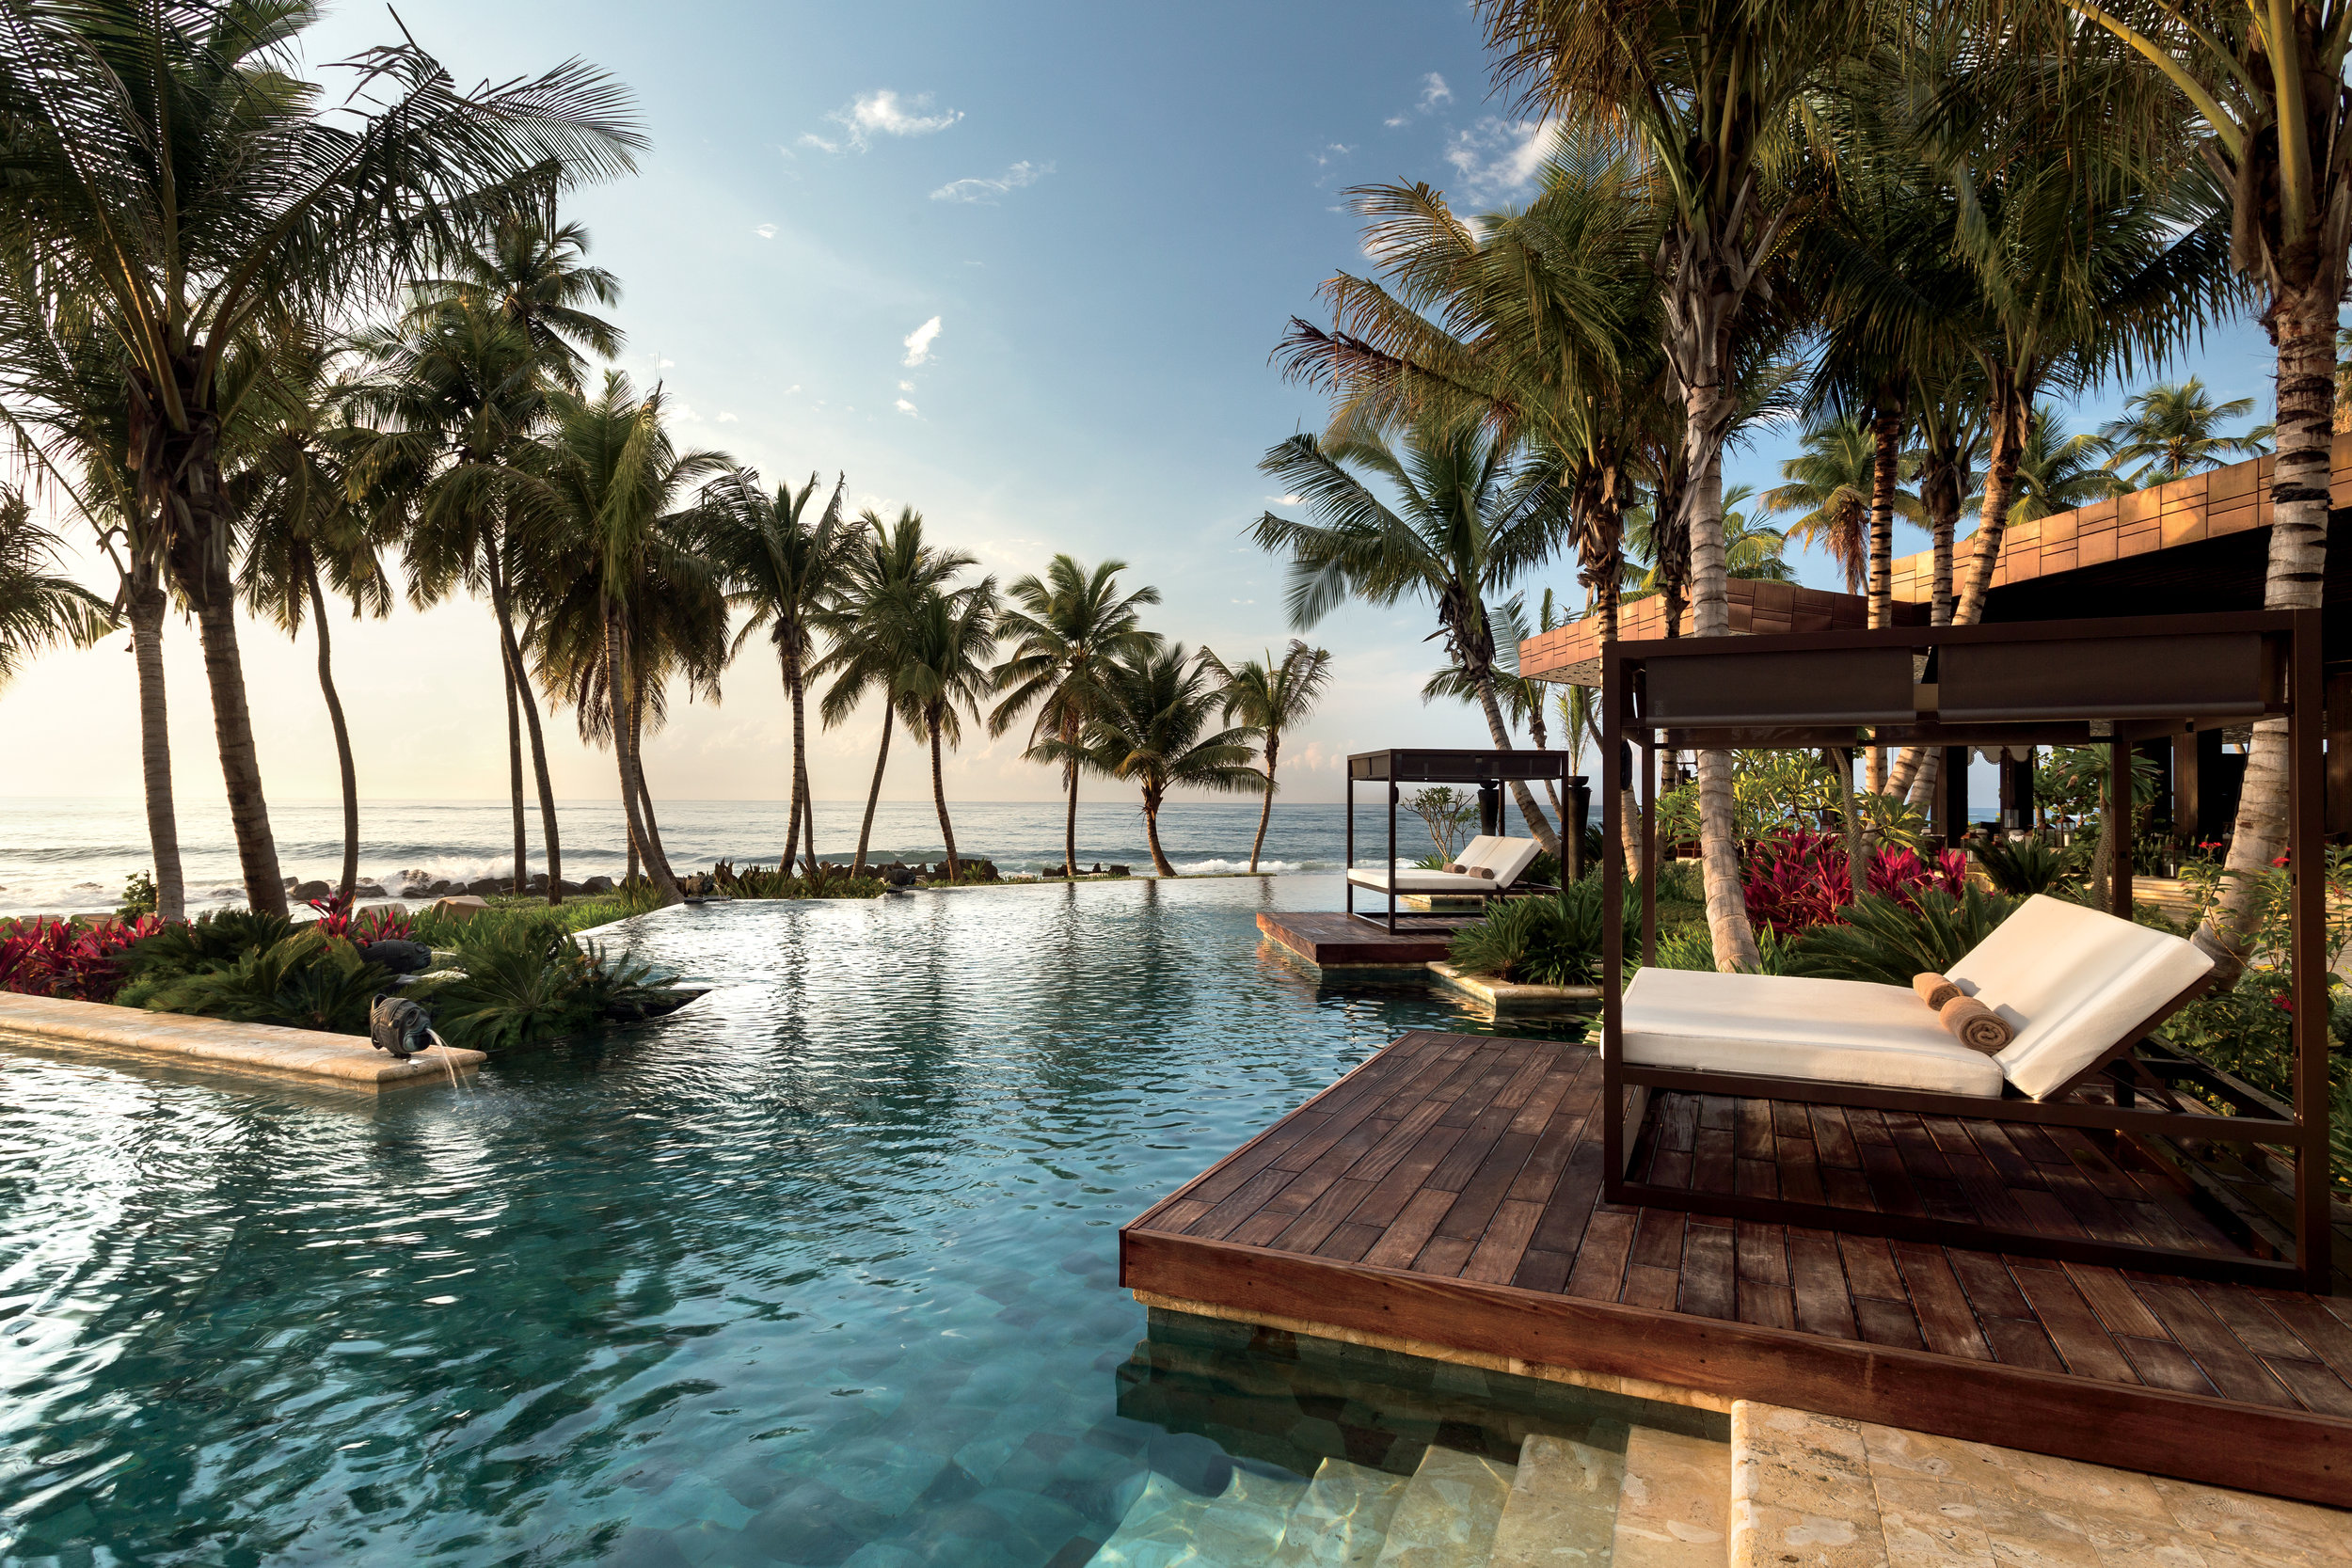 The Luxury hotel experience - Complimentary Upgrades And benefits For VIP's Worldwide